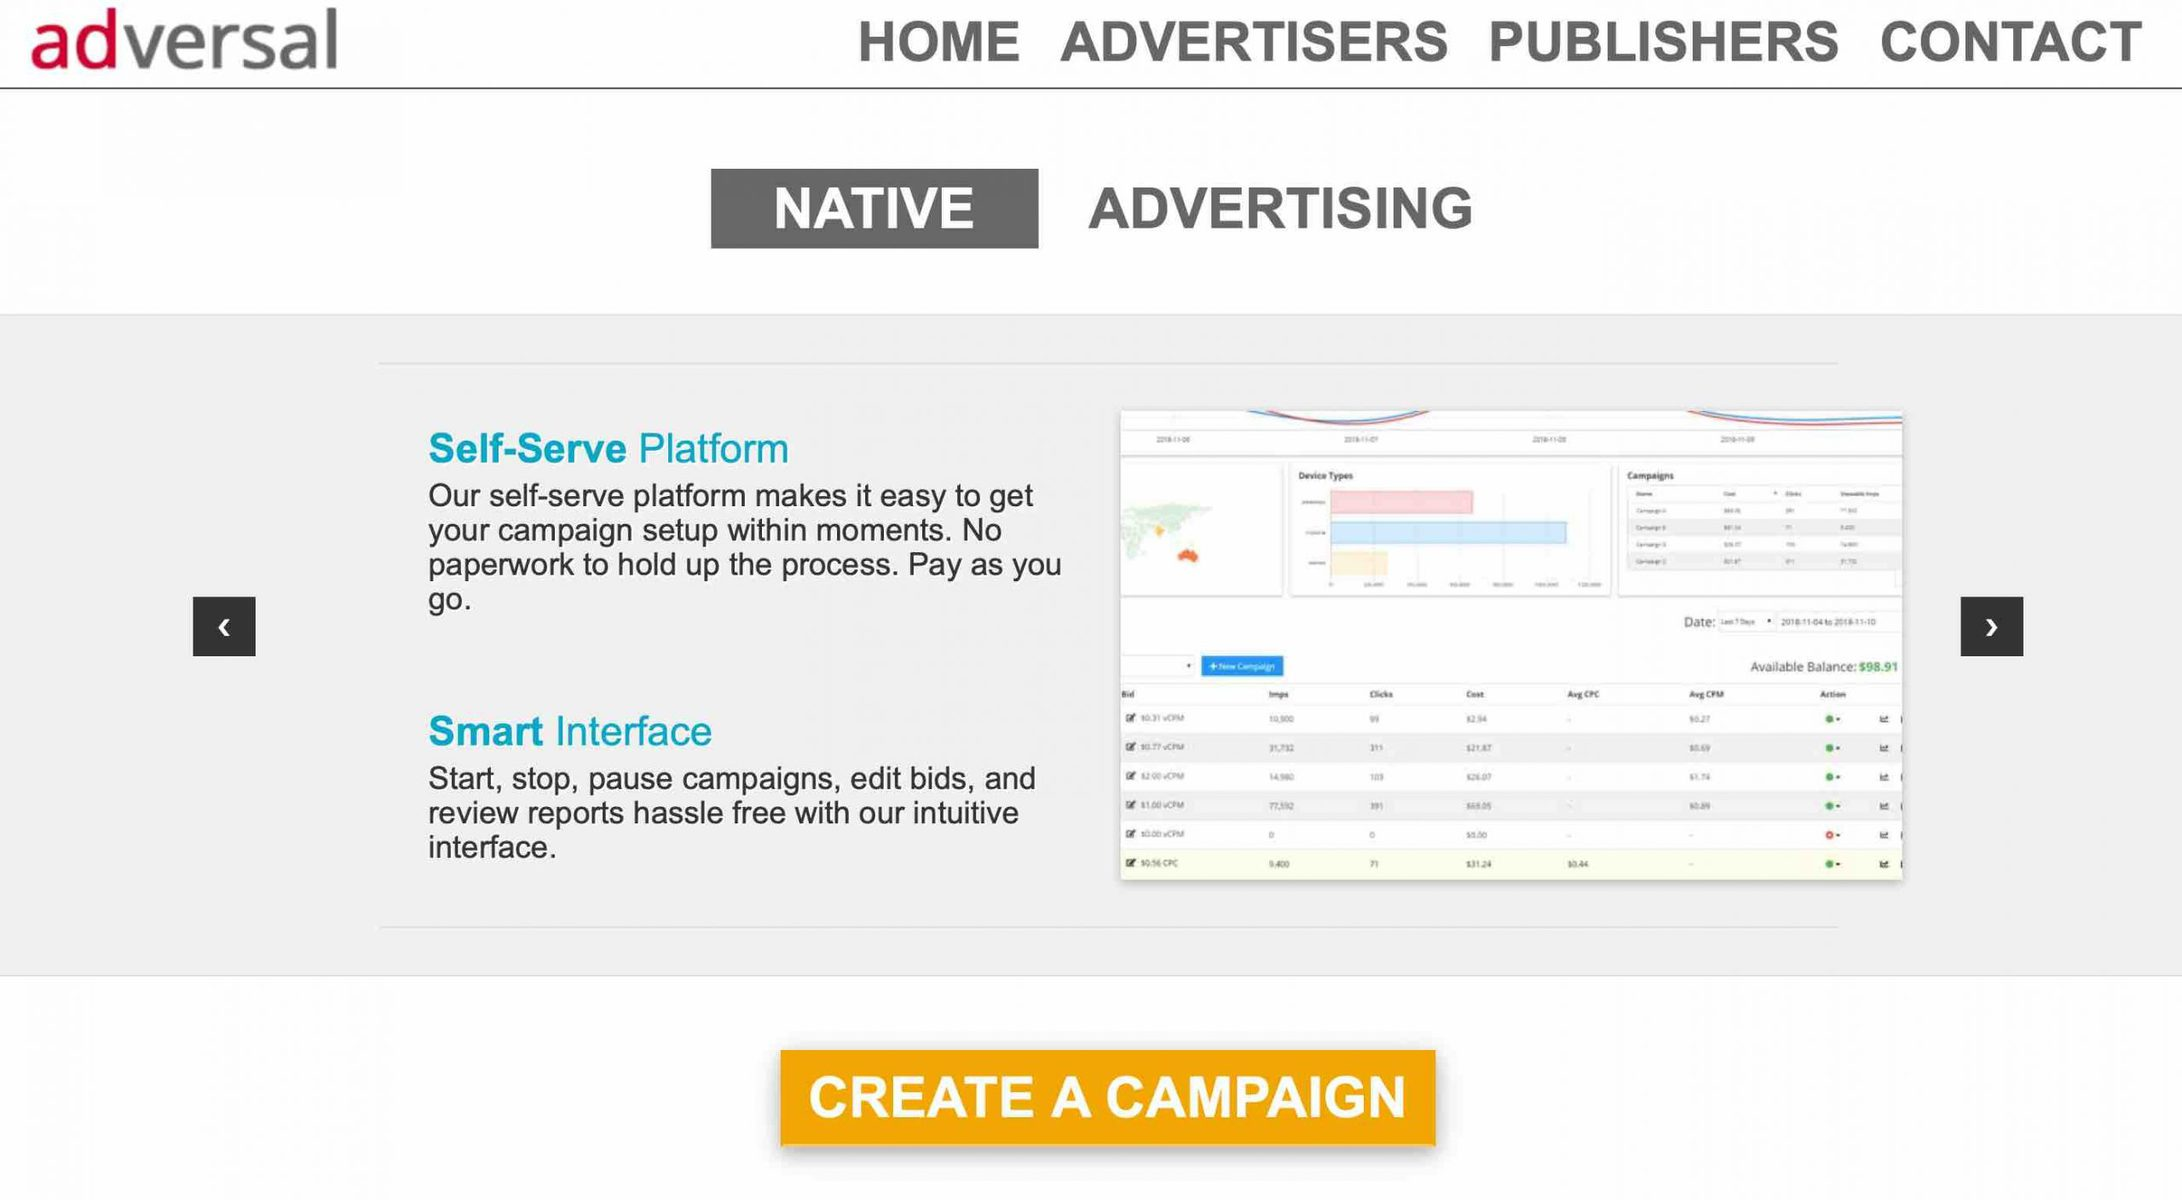 Drive Traffic and Increase Your Presence with Native Advertising